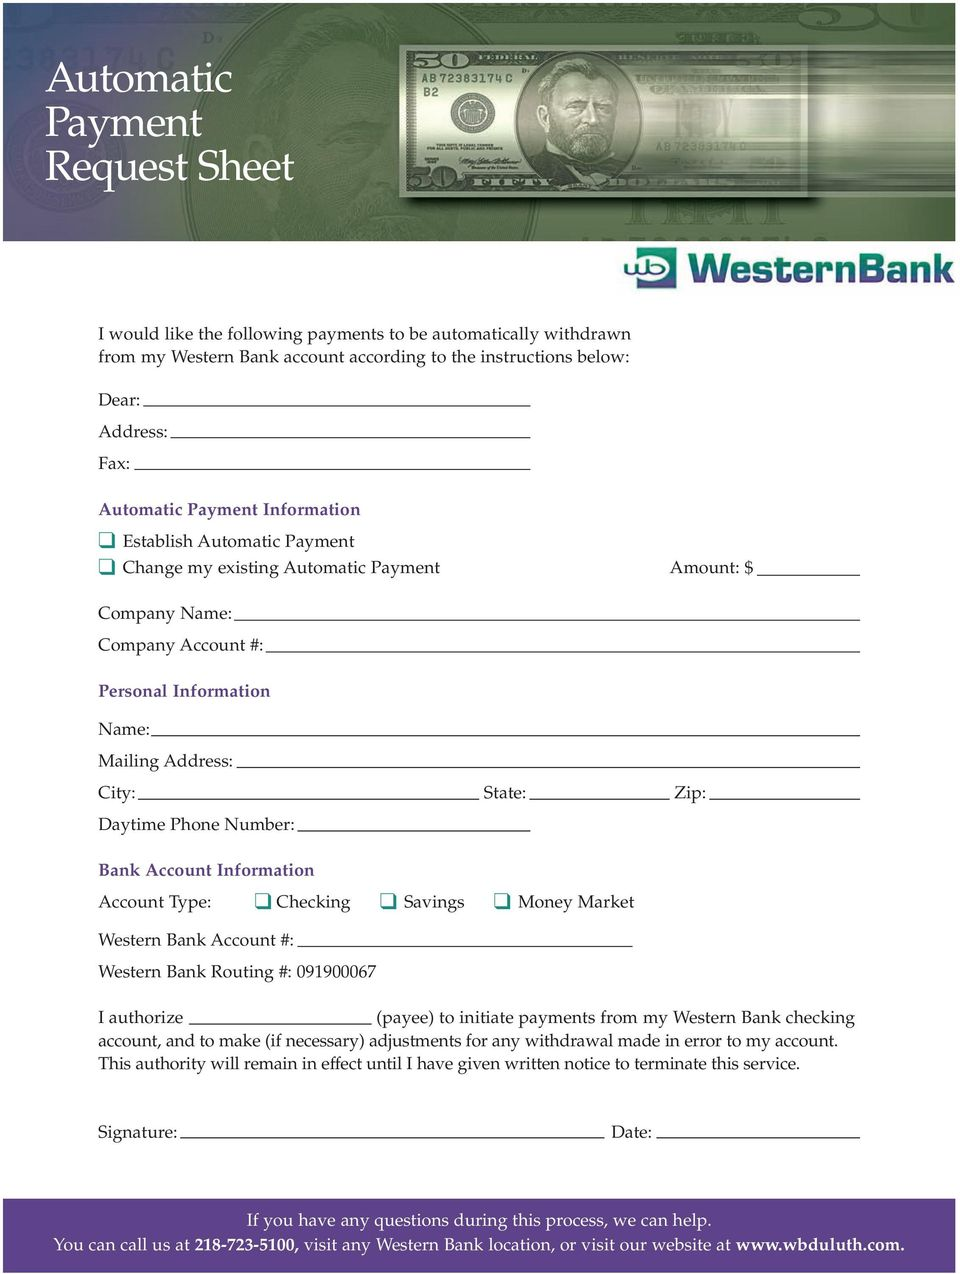 Phone Number: Bank Account Information Account Type: Checking Savings Money Market Western Bank Account #: Western Bank Routing #: 091900067 I authorize (payee) to initiate payments from my Western